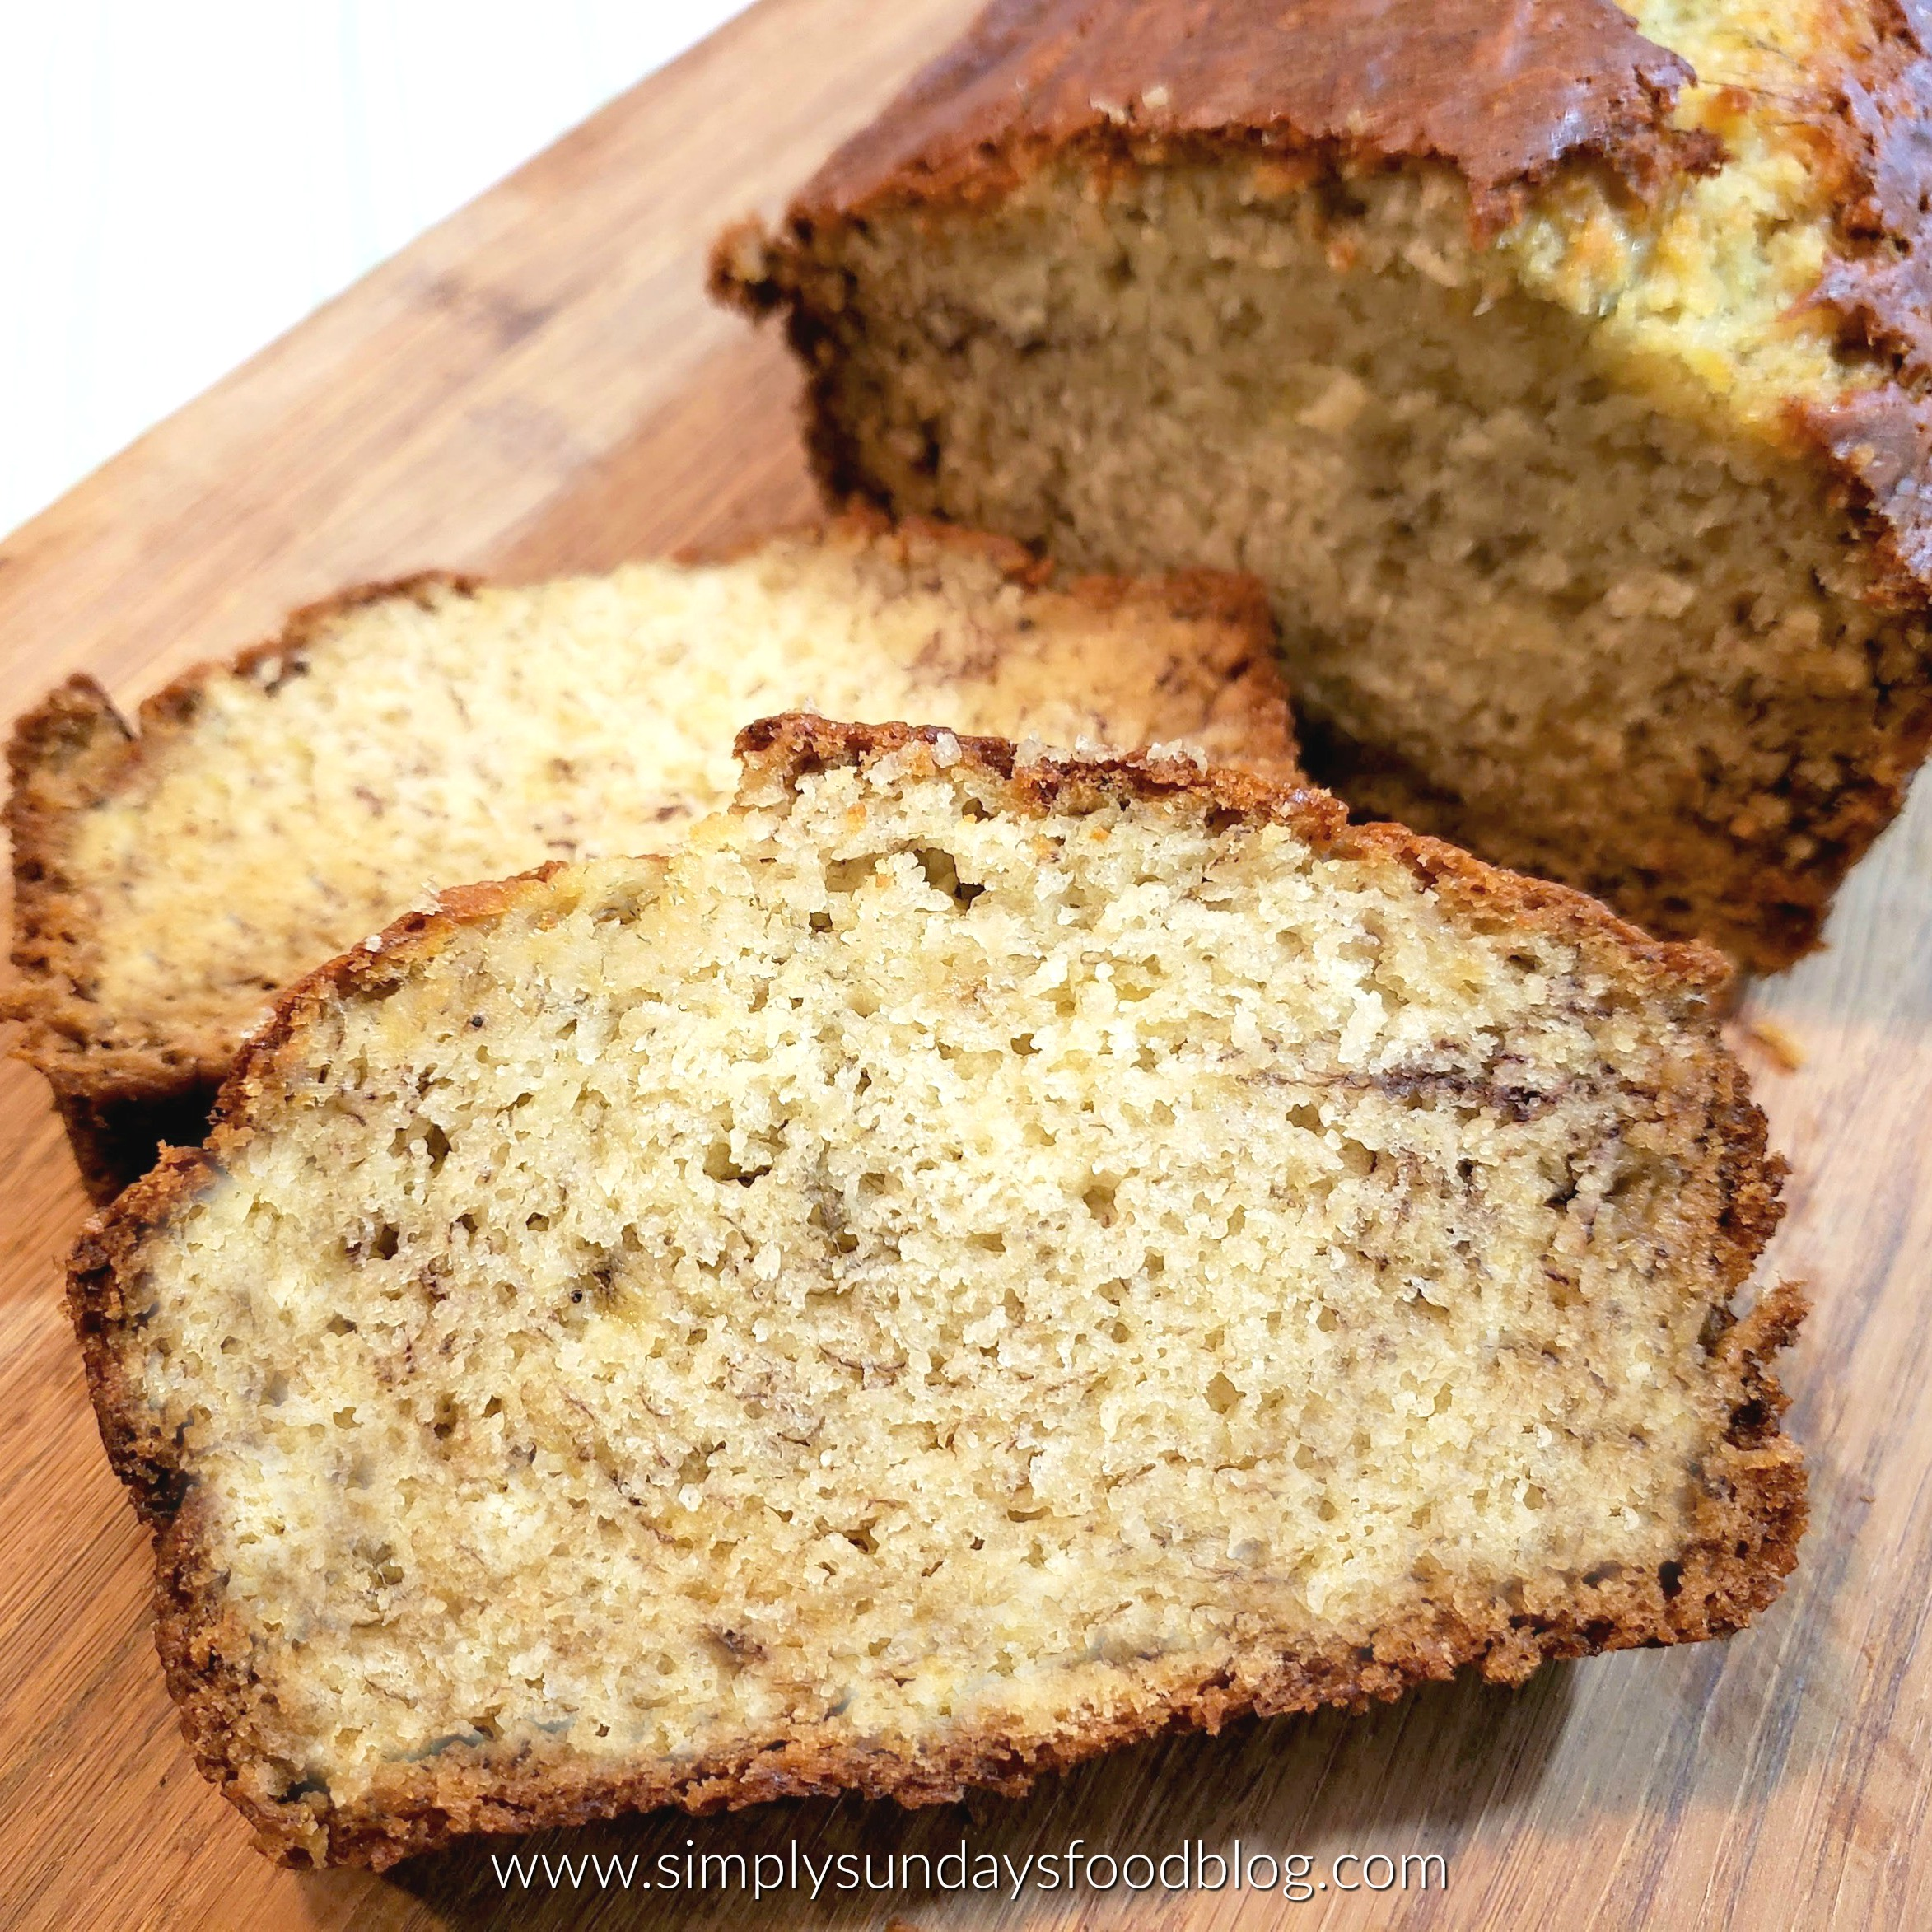 Slices of moist banana bread on a cutting board